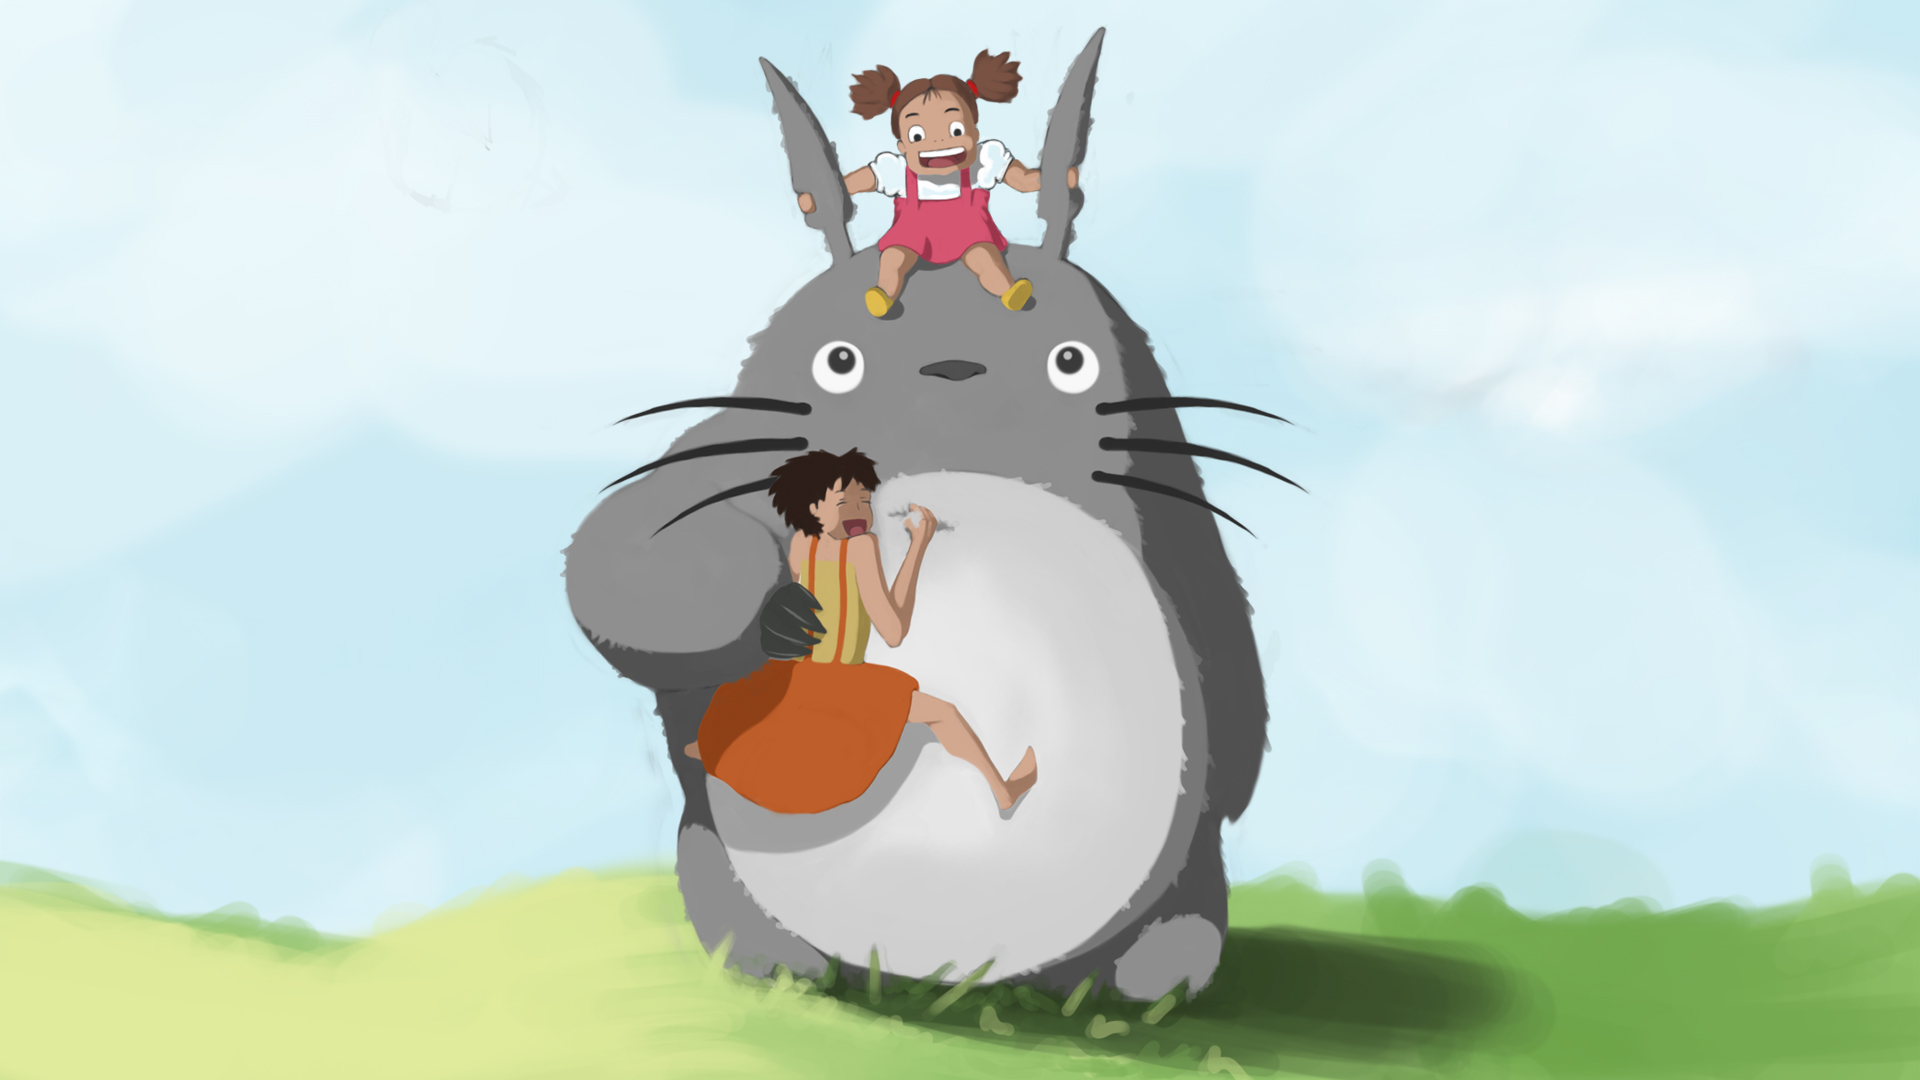 Totoro - 2D Illustration